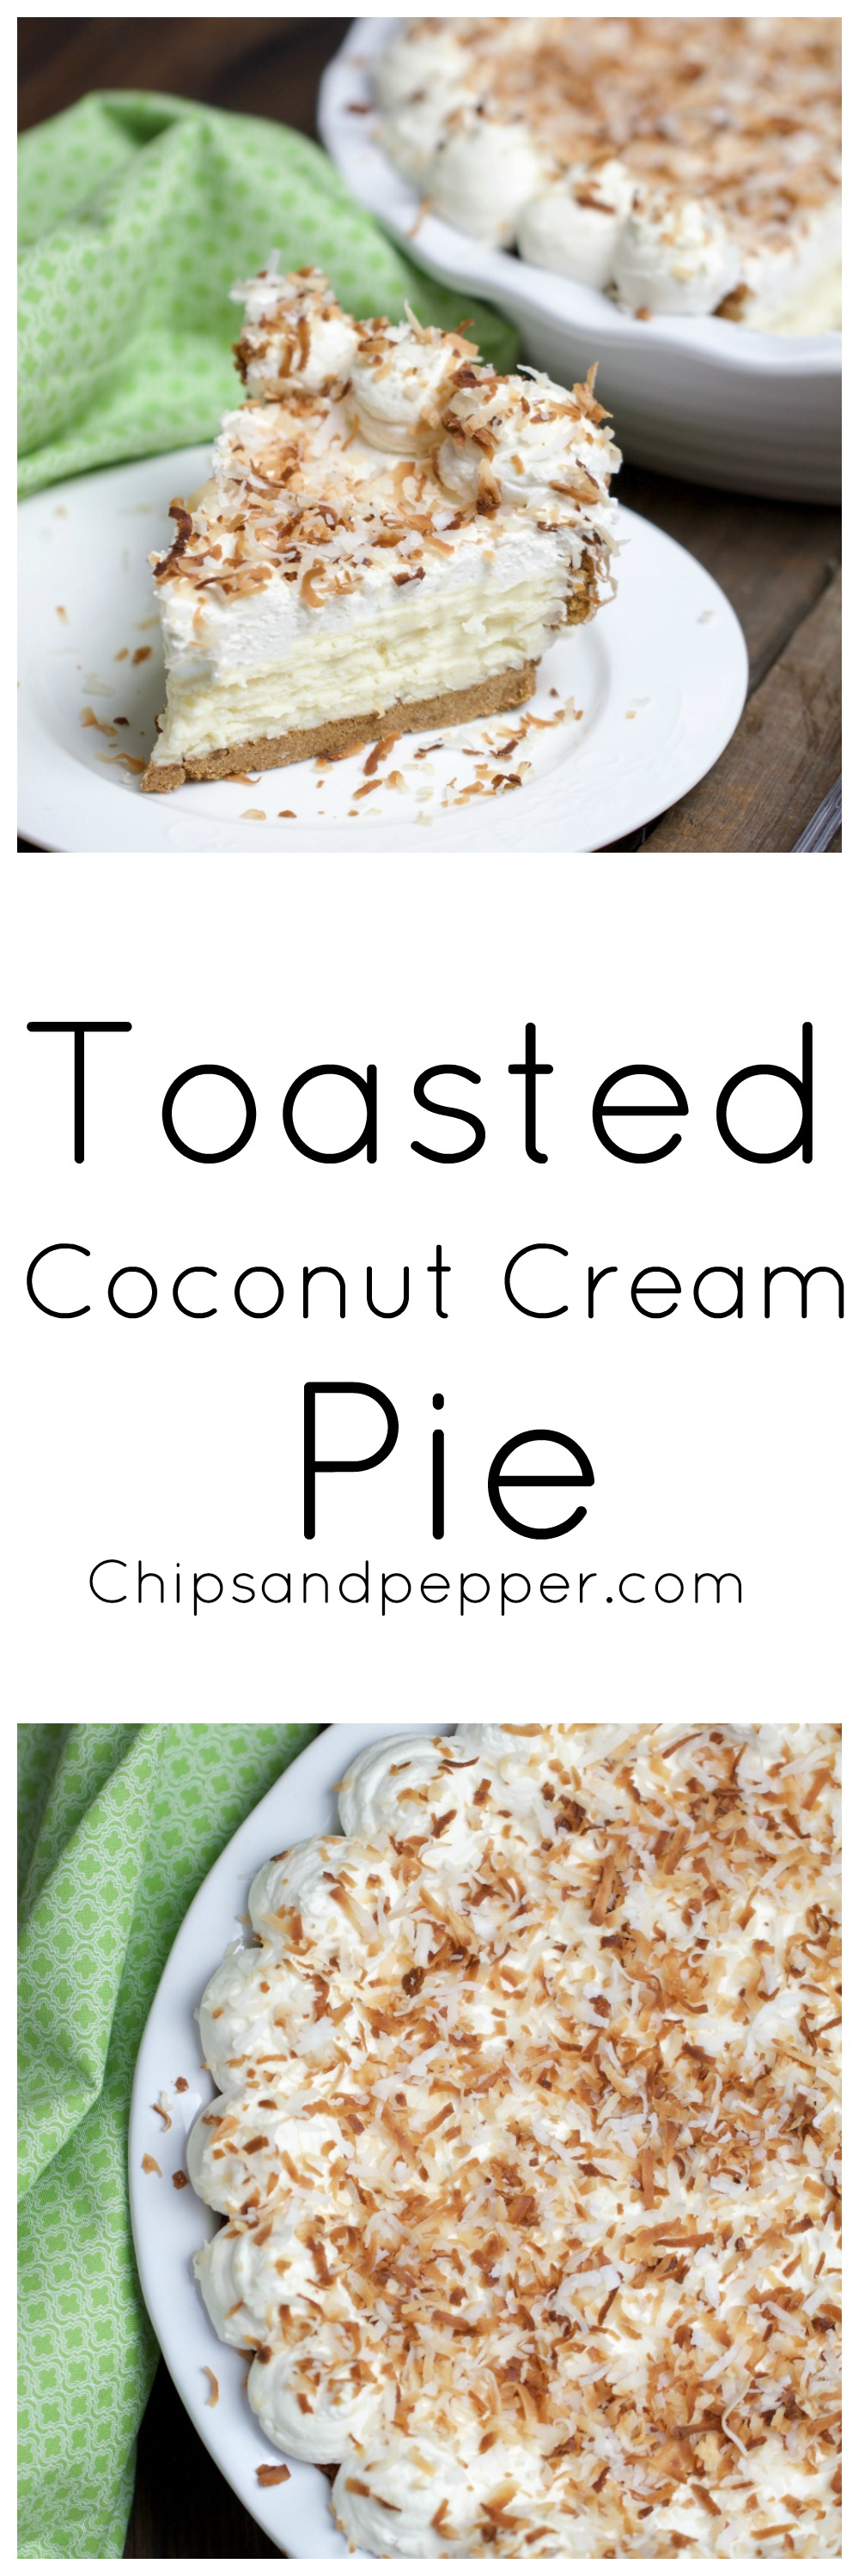 Toasted Coconut Cream Pie - chipsandpepper.com